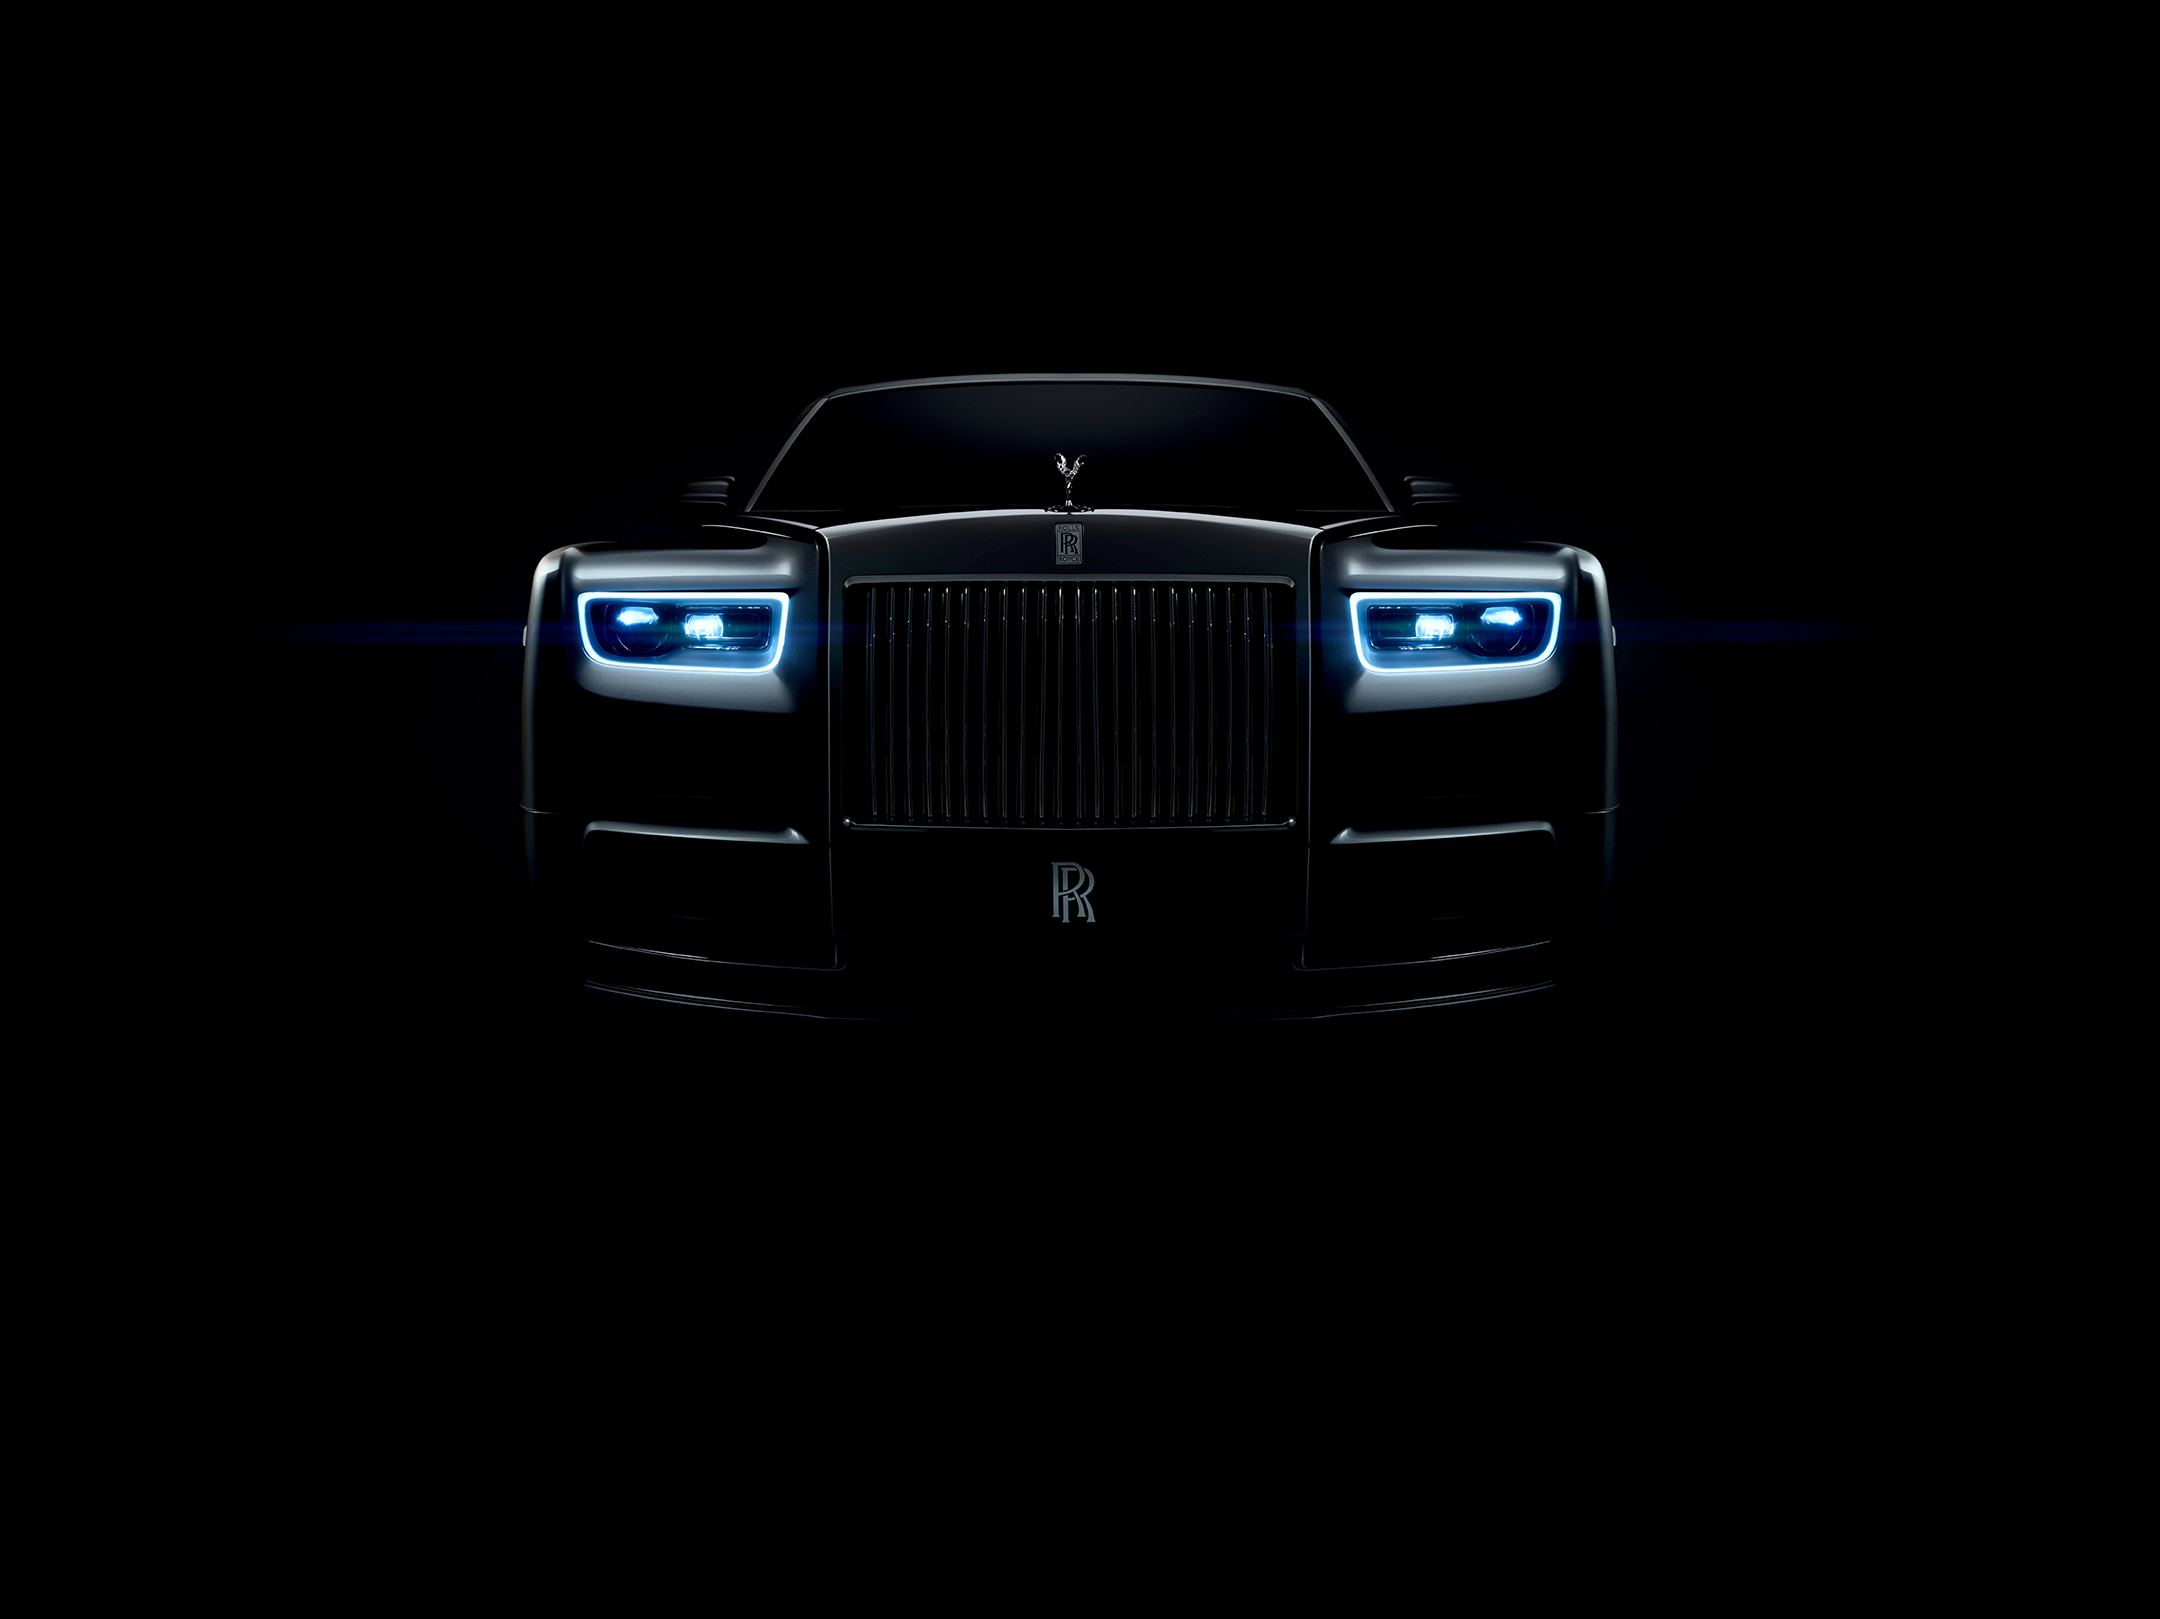 Rolls-Royce Phantom - 2017 - front light